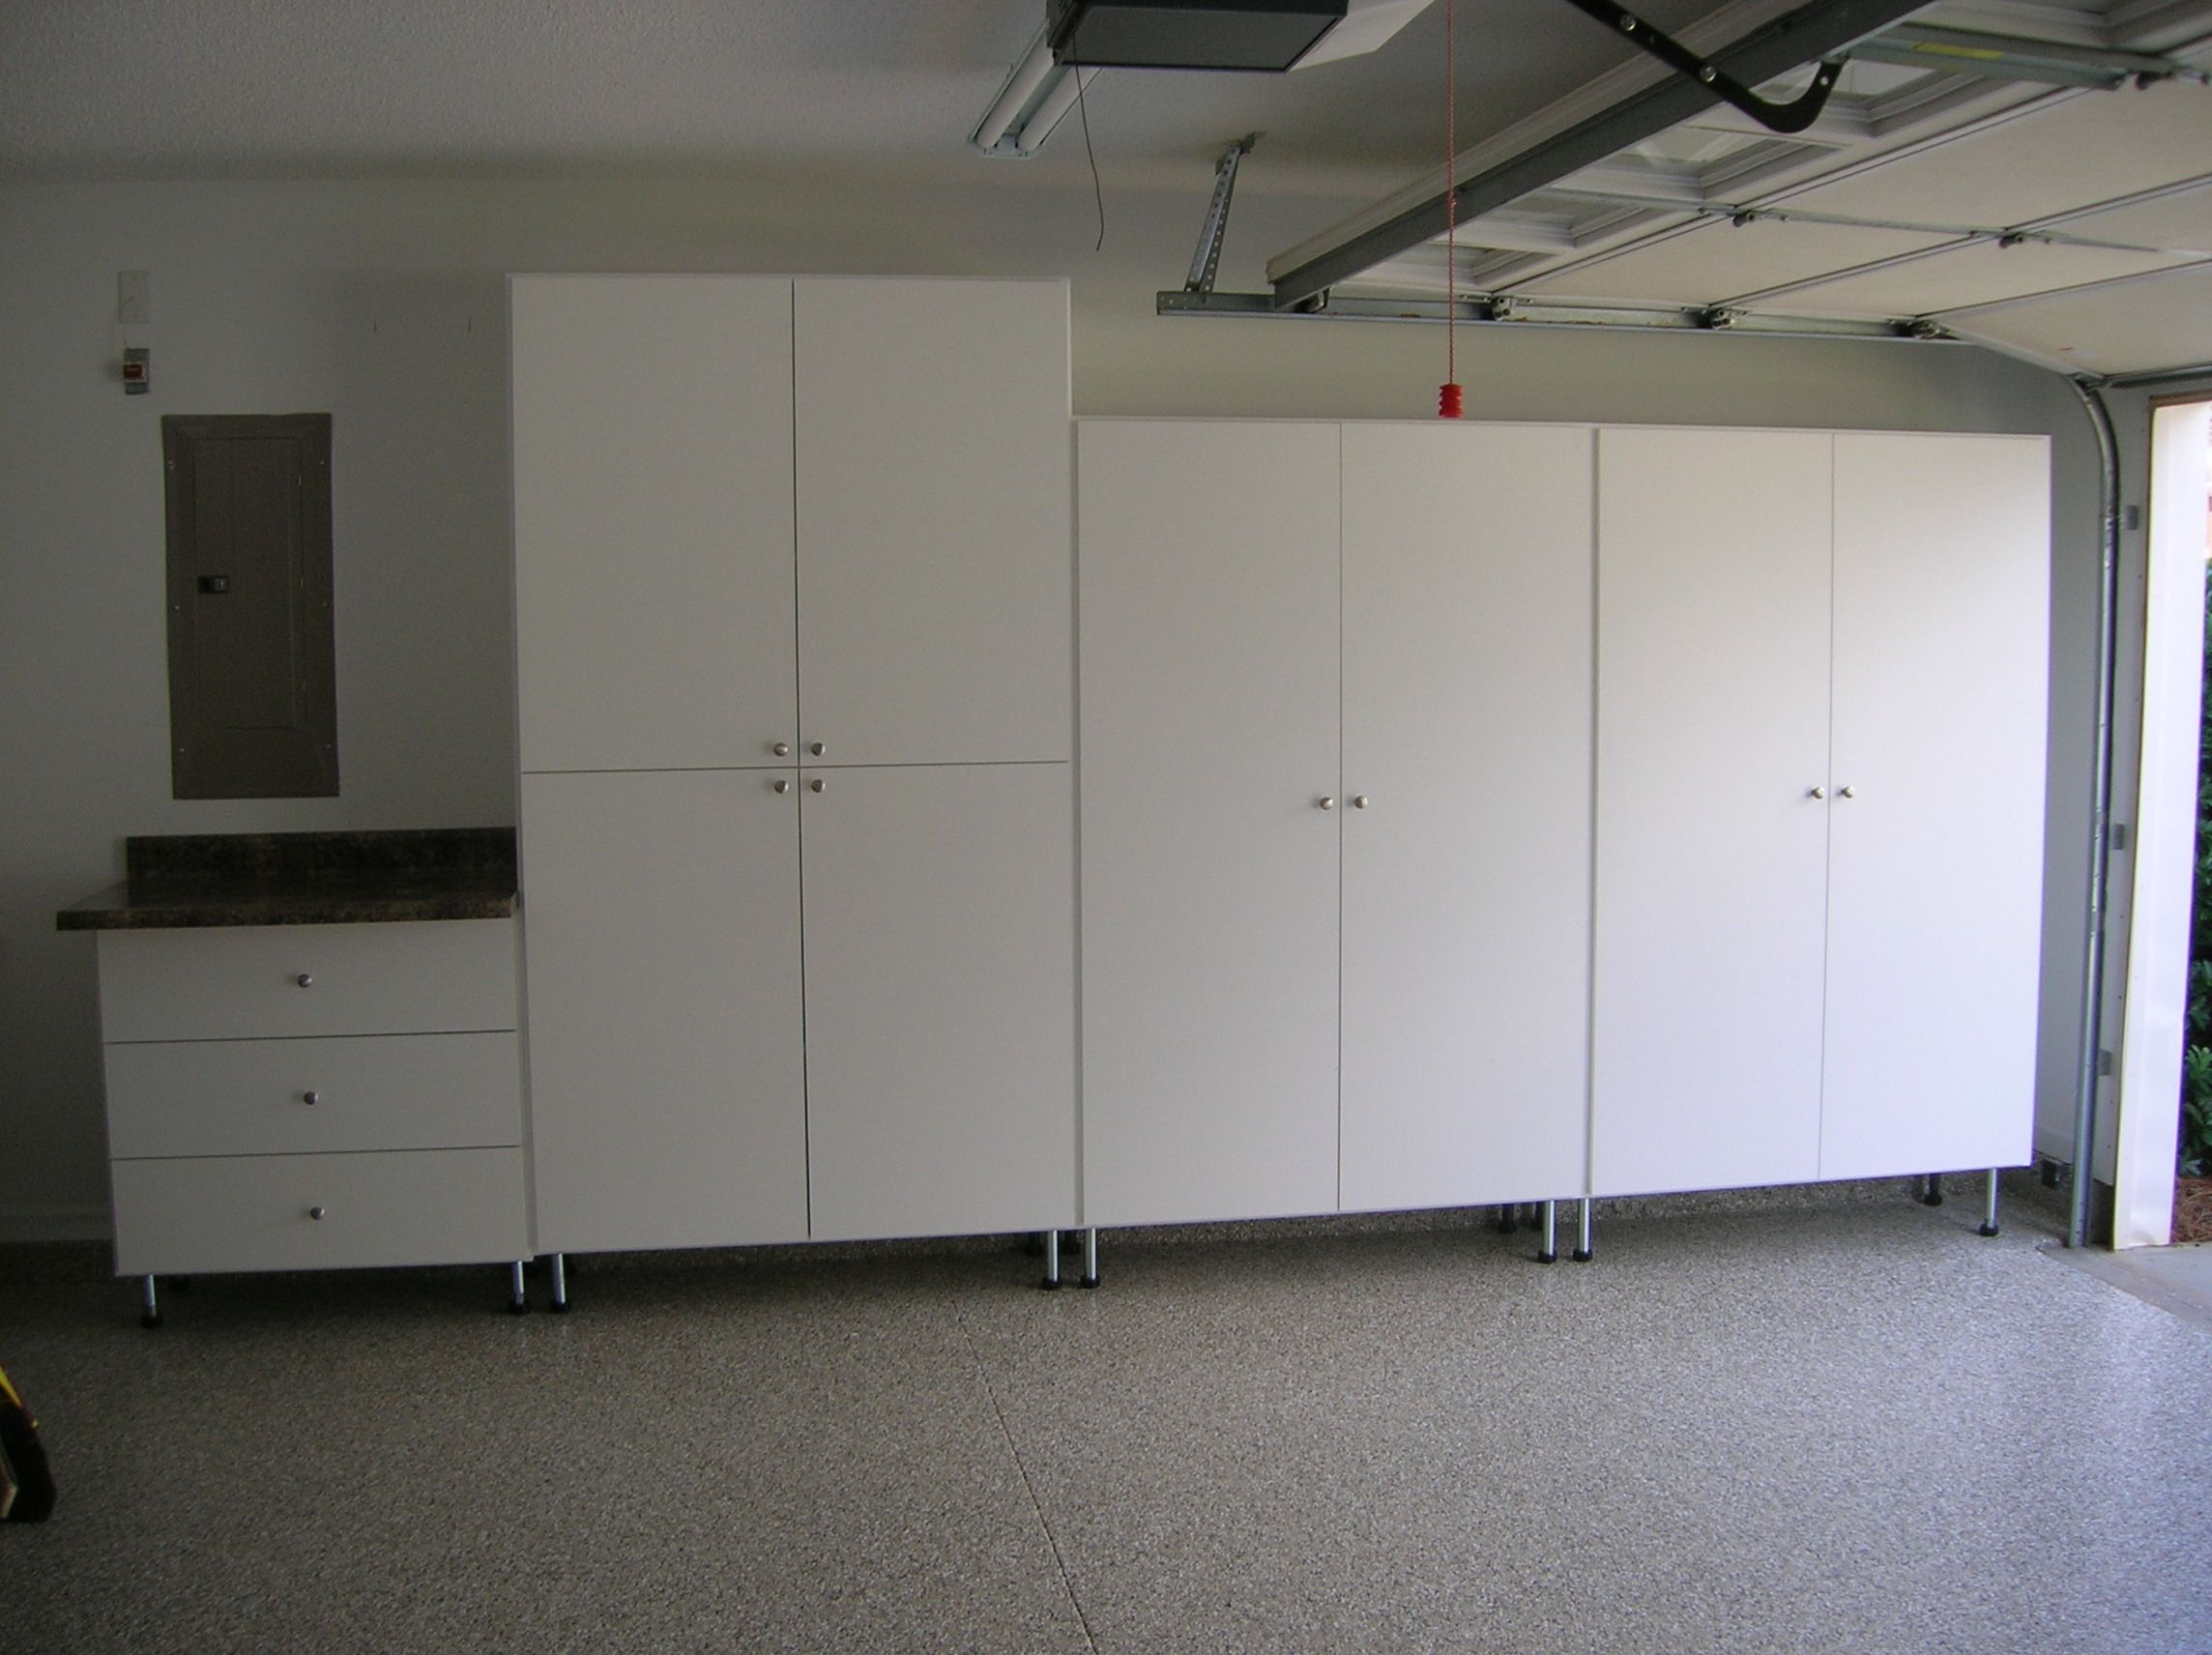 homes pack cabinets for unique of flat uk image photograph ikea suppliers black furniture kitchen inspirational garage